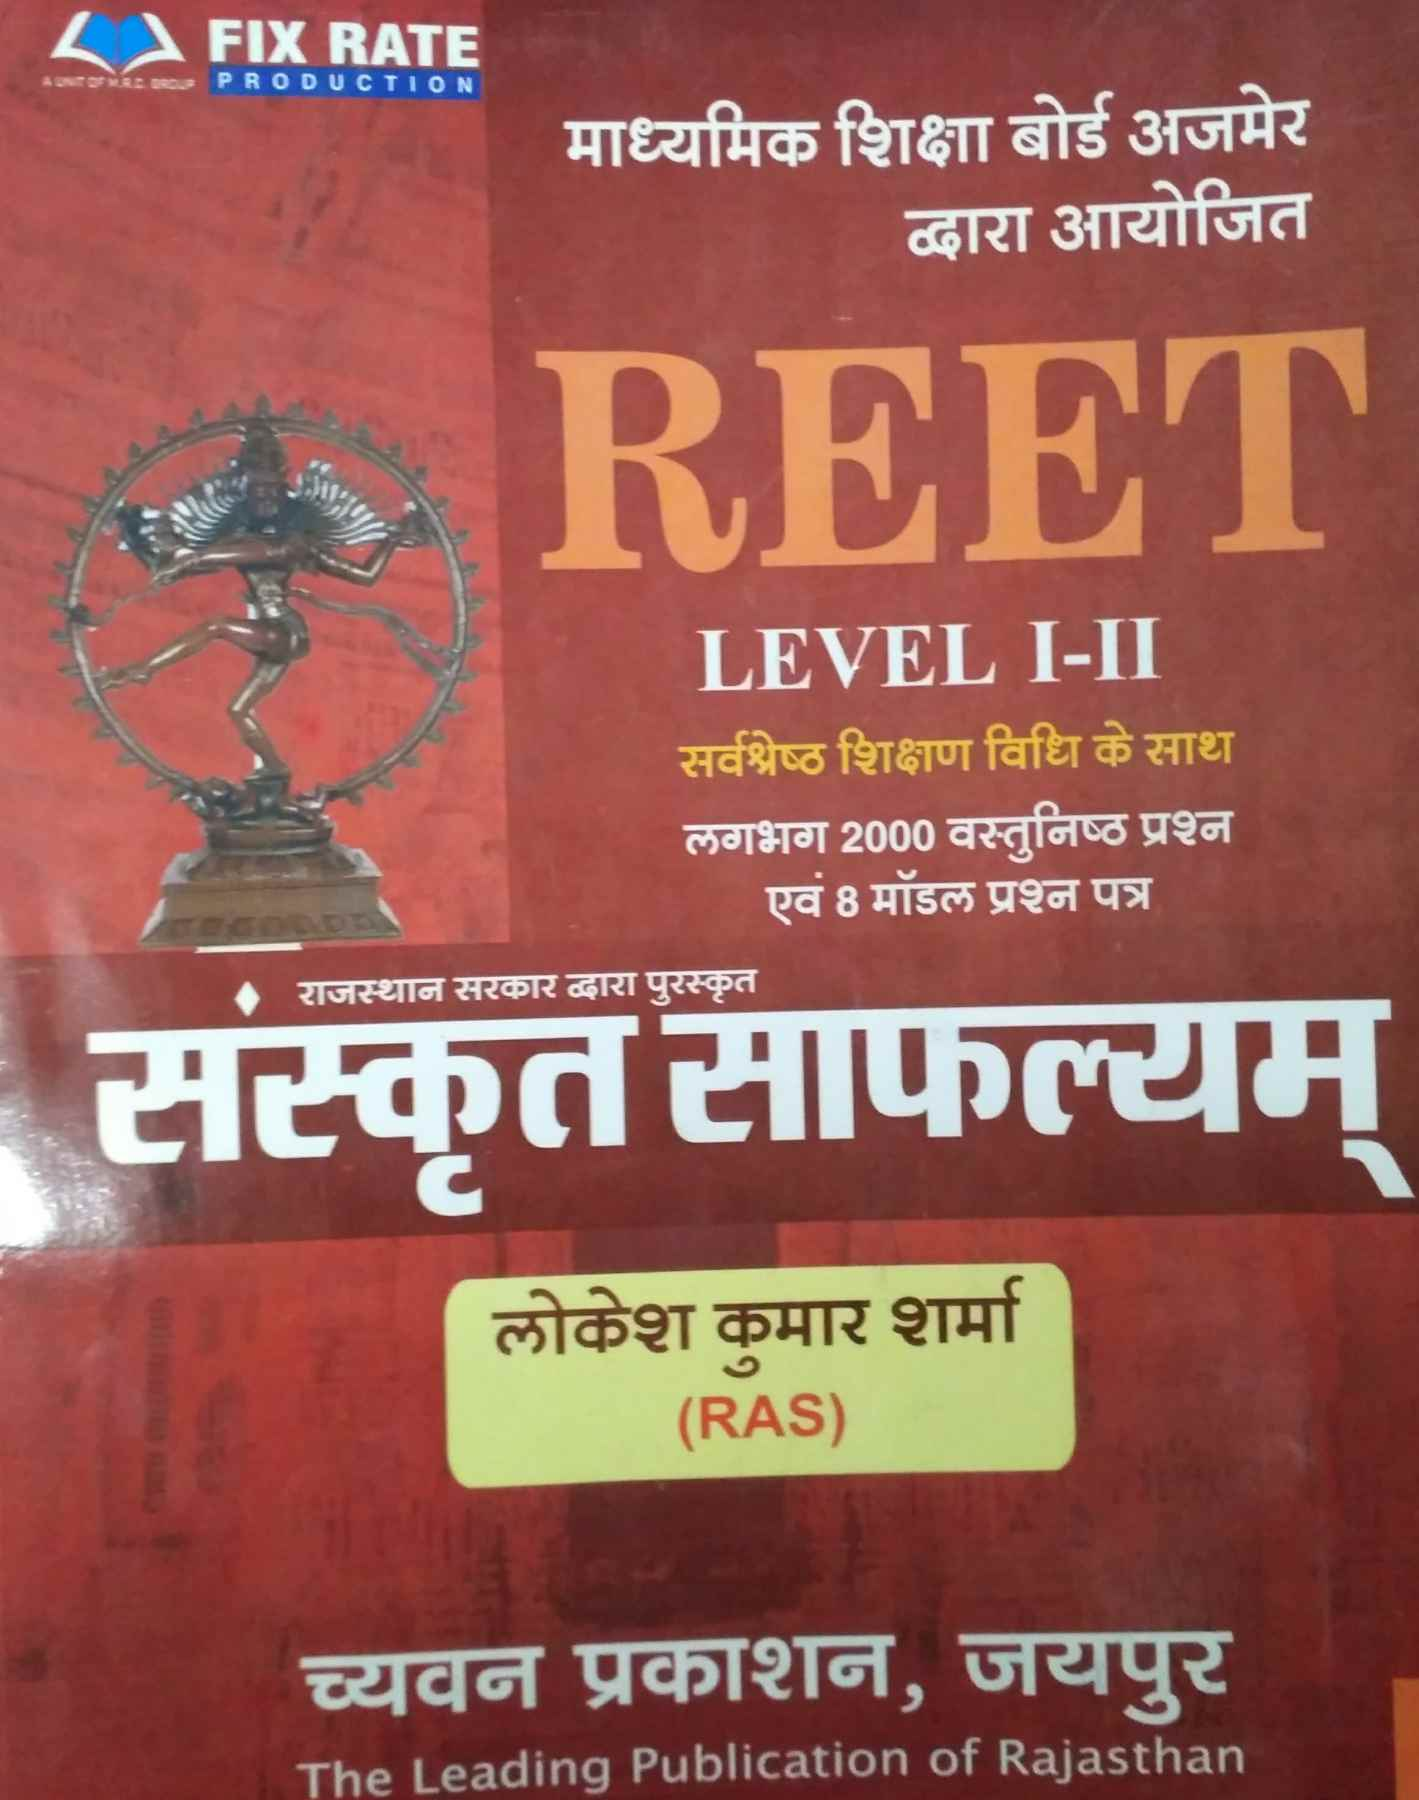 Best books for reet rajasthan eligibility examination for teachers chavyan reet level i ii sa fandeluxe Image collections